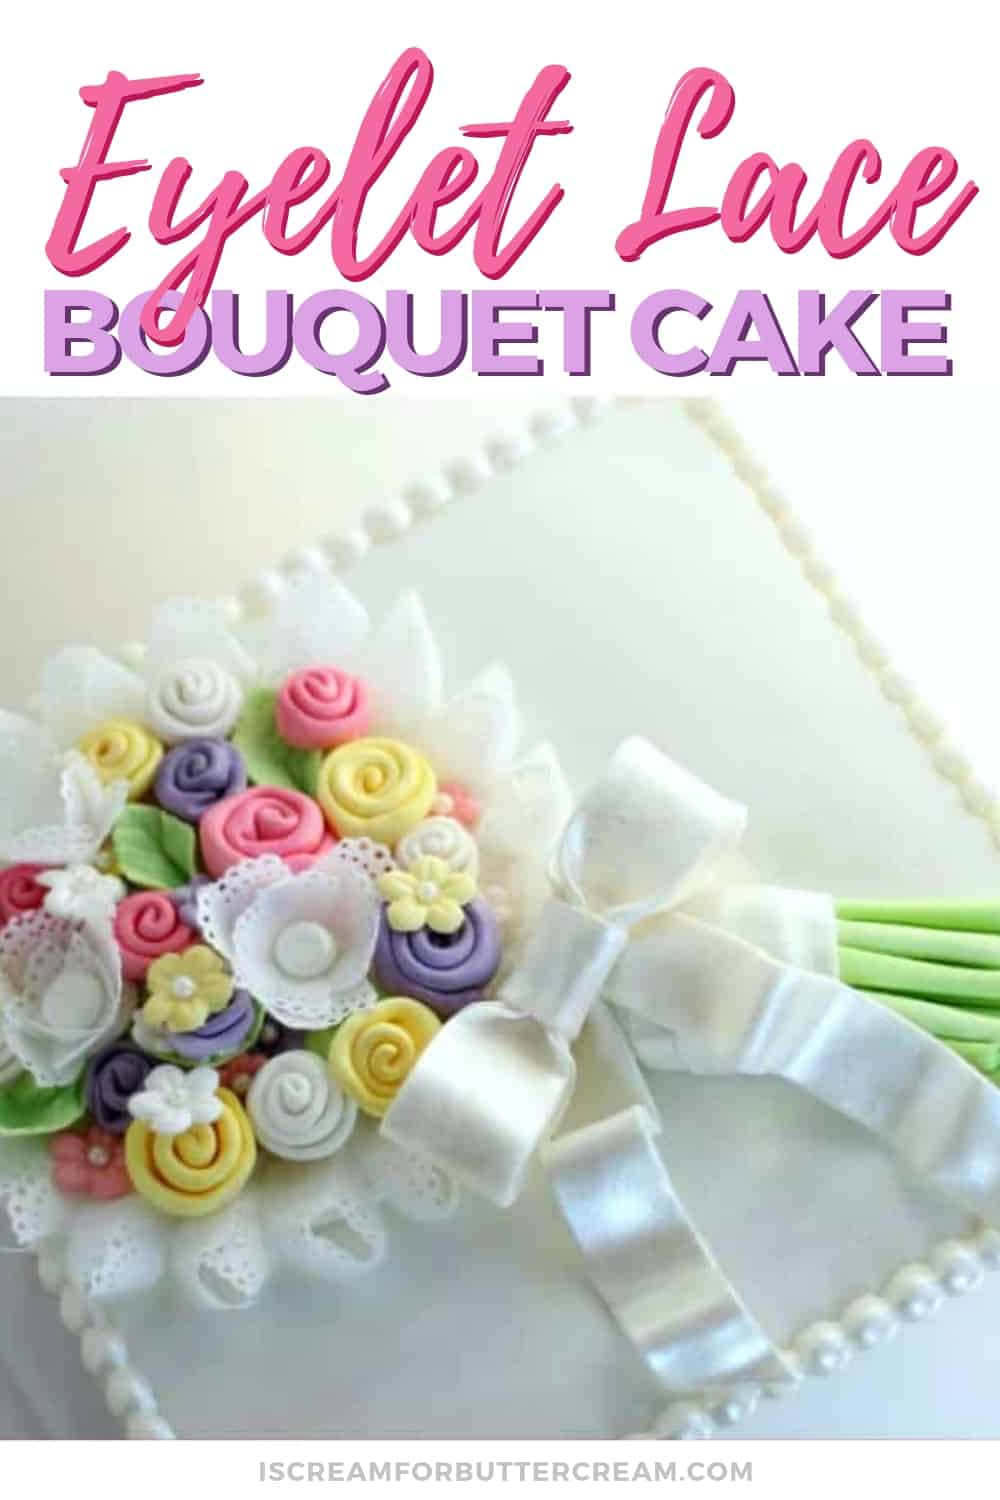 Floral and Eyelet Lace Bouquet Cake New Pin 2